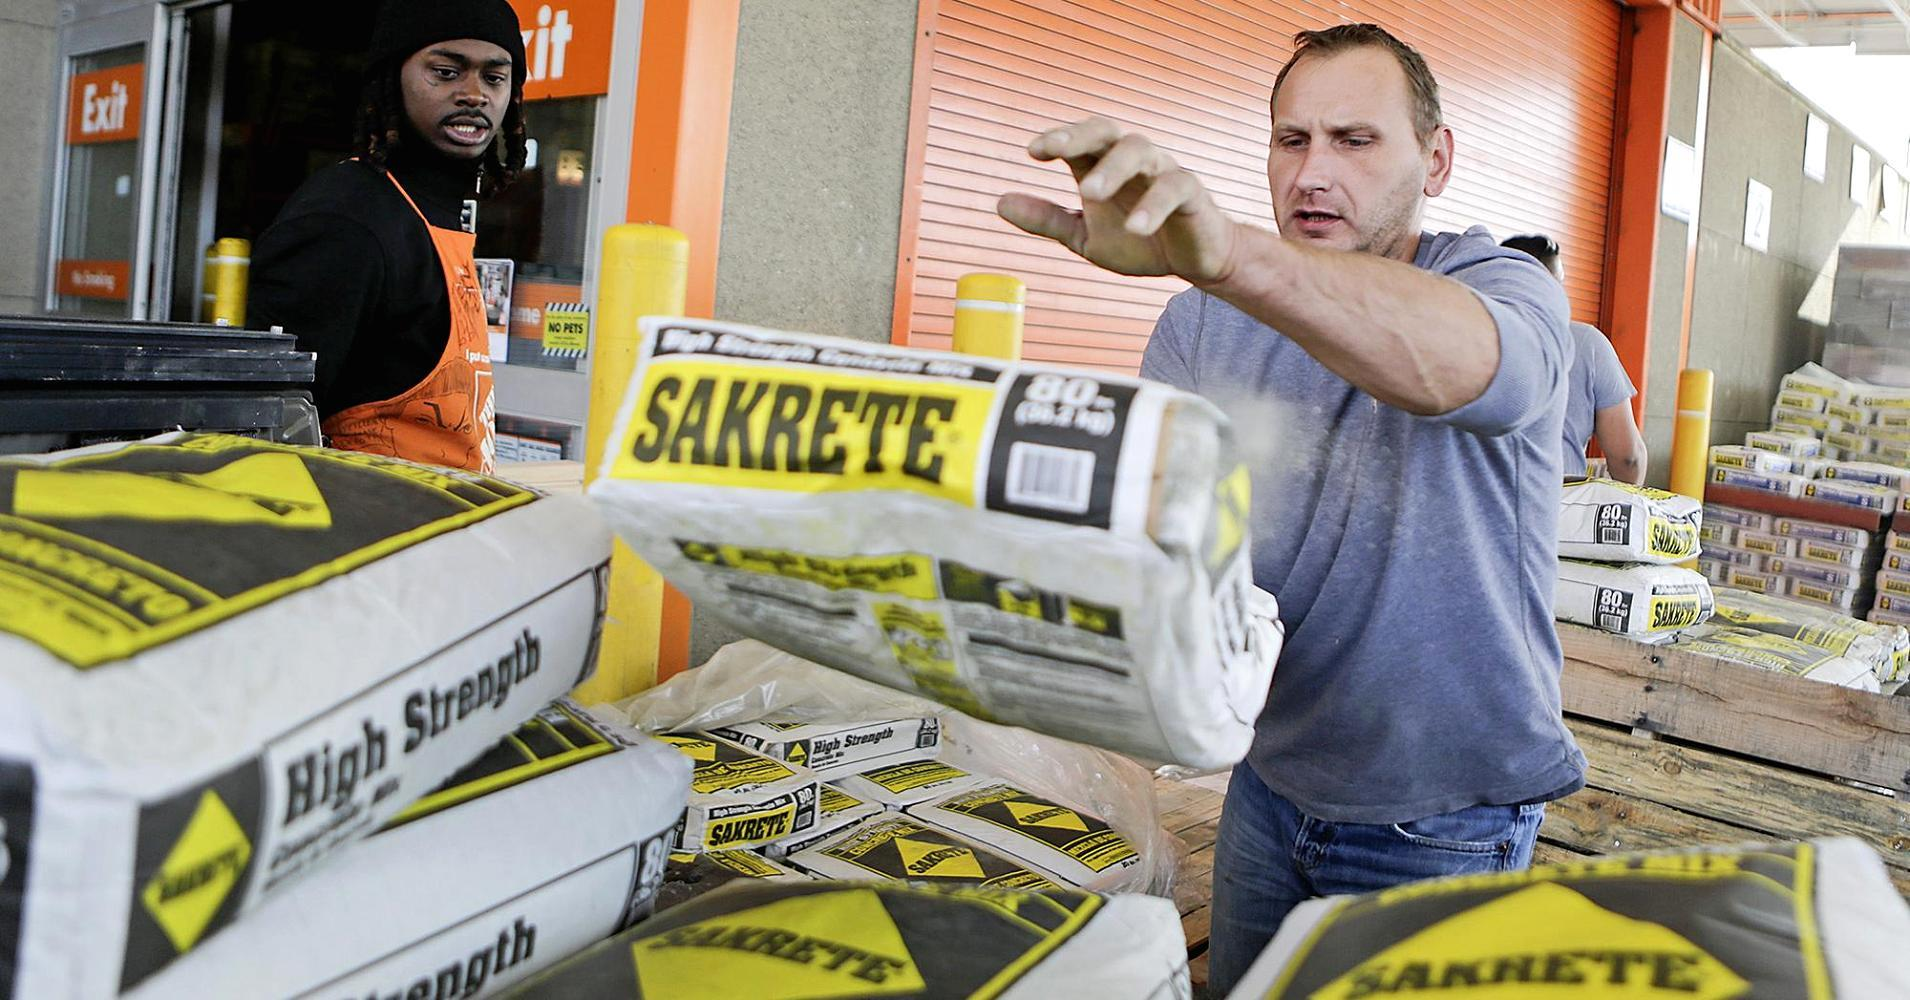 Remodeling boom boosts housing industry